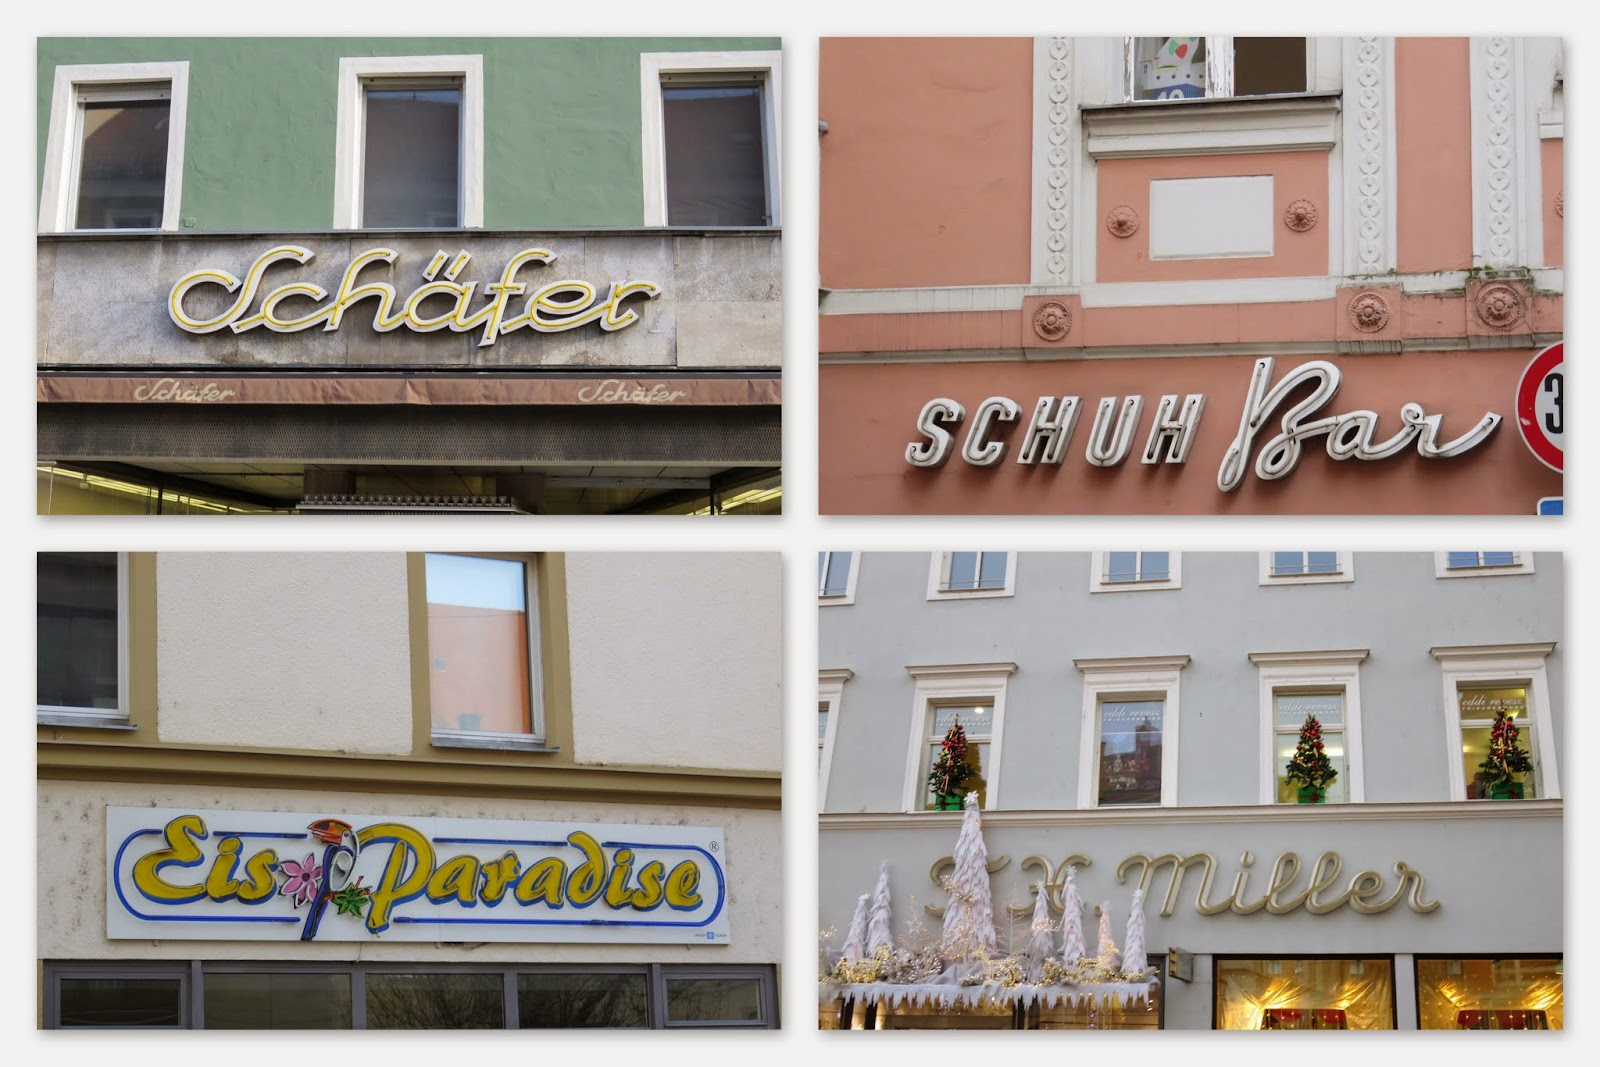 Regensburg - Old-Fashioned Neon Signs